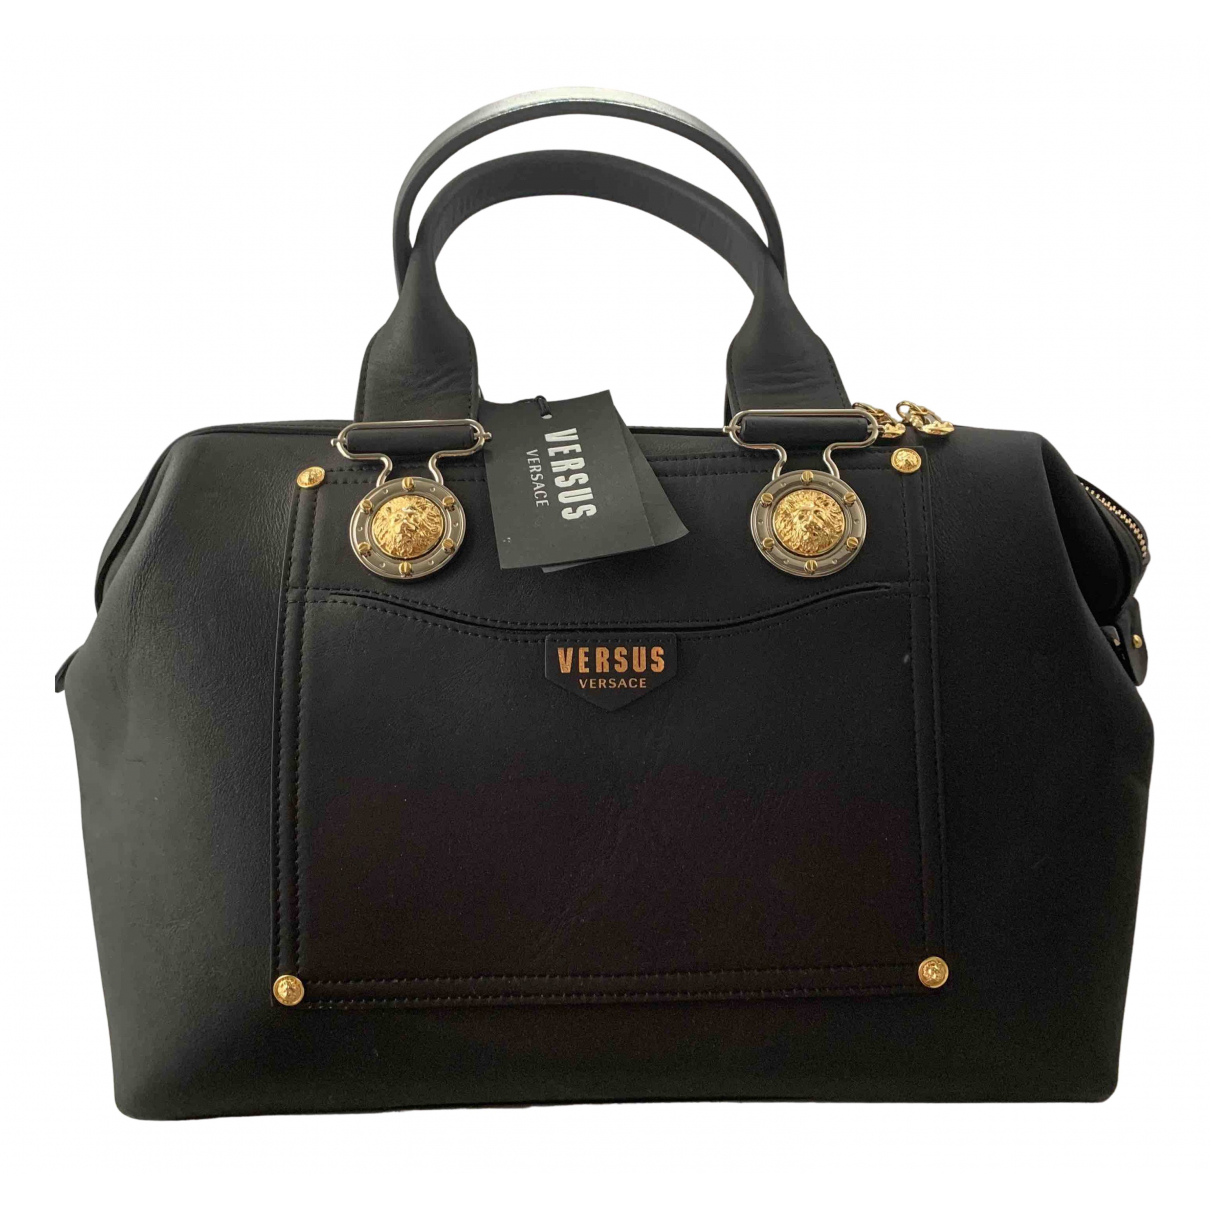 Versus \N Black Leather handbag for Women \N